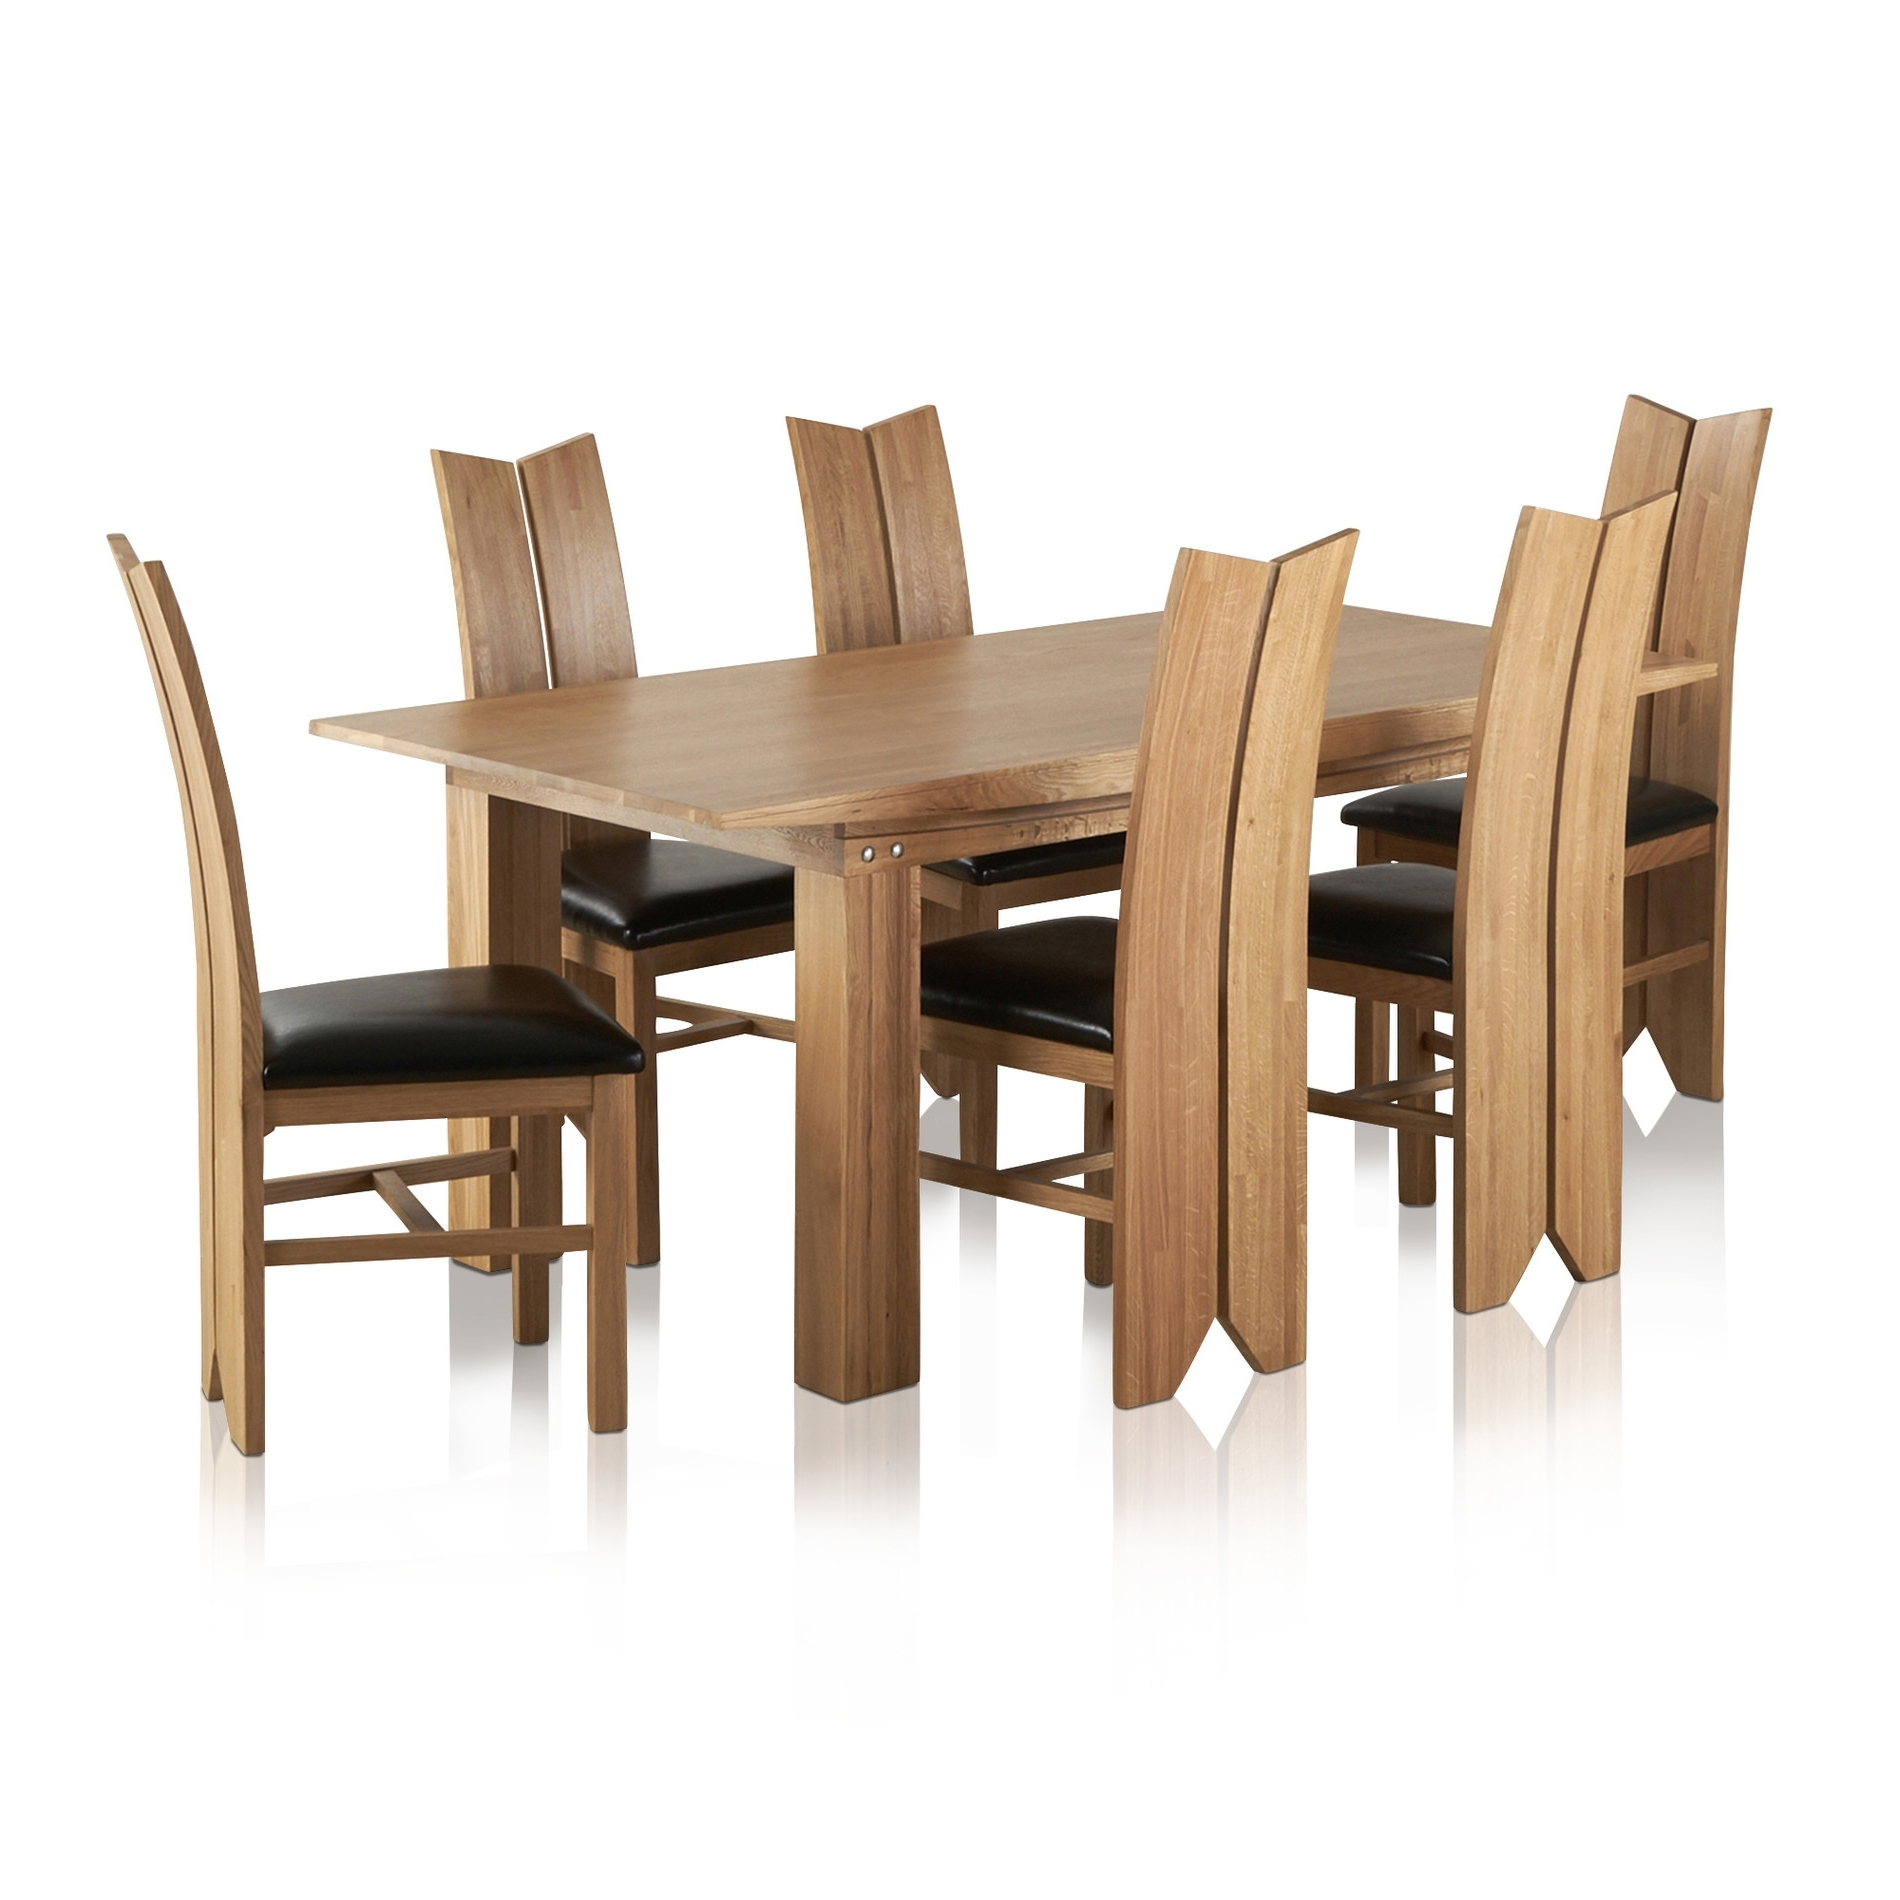 Tokyo Dining Set In Oak: Table + 6 Tulip Black Leather Chairs For Most Recently Released Tokyo Dining Tables (View 25 of 25)